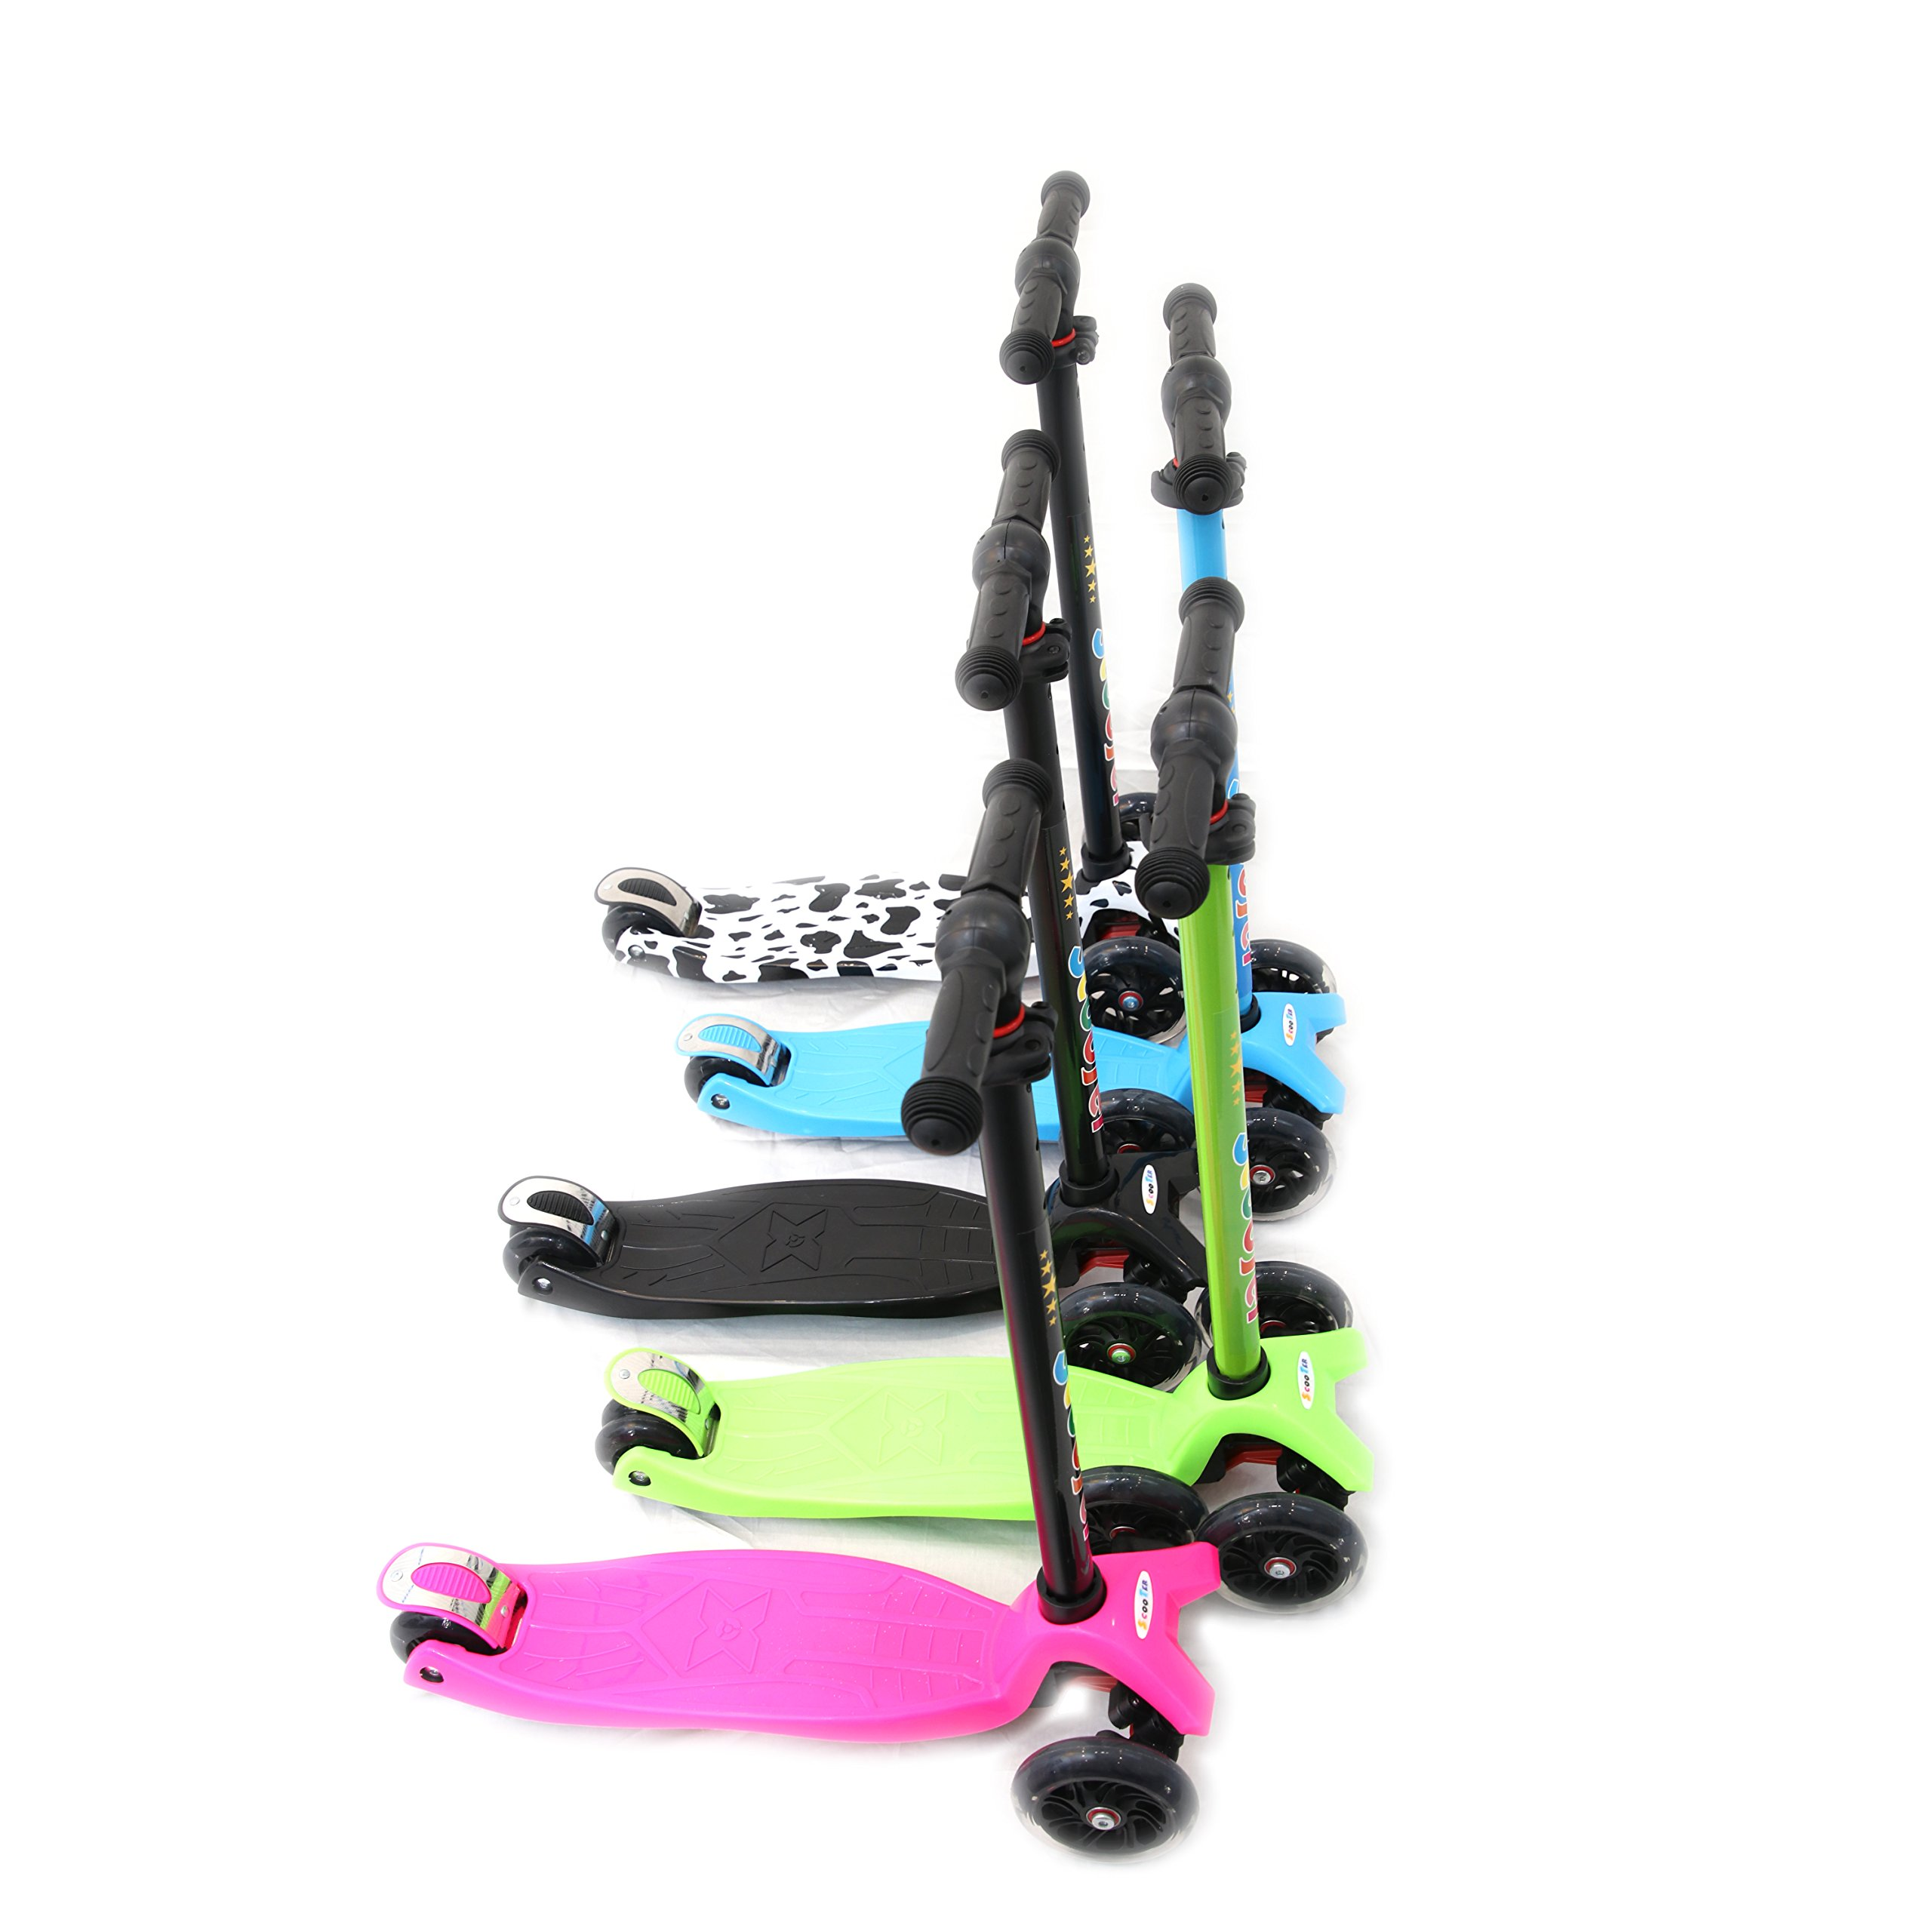 3 Wheel Kick Scooter. For Kids 2-12 Years, Premium Aluminum, Adjustable Height, PU Wheel with LED Rear Lights. 4 Years Warranty. 5 colors (Pink + Bonus Book Children)